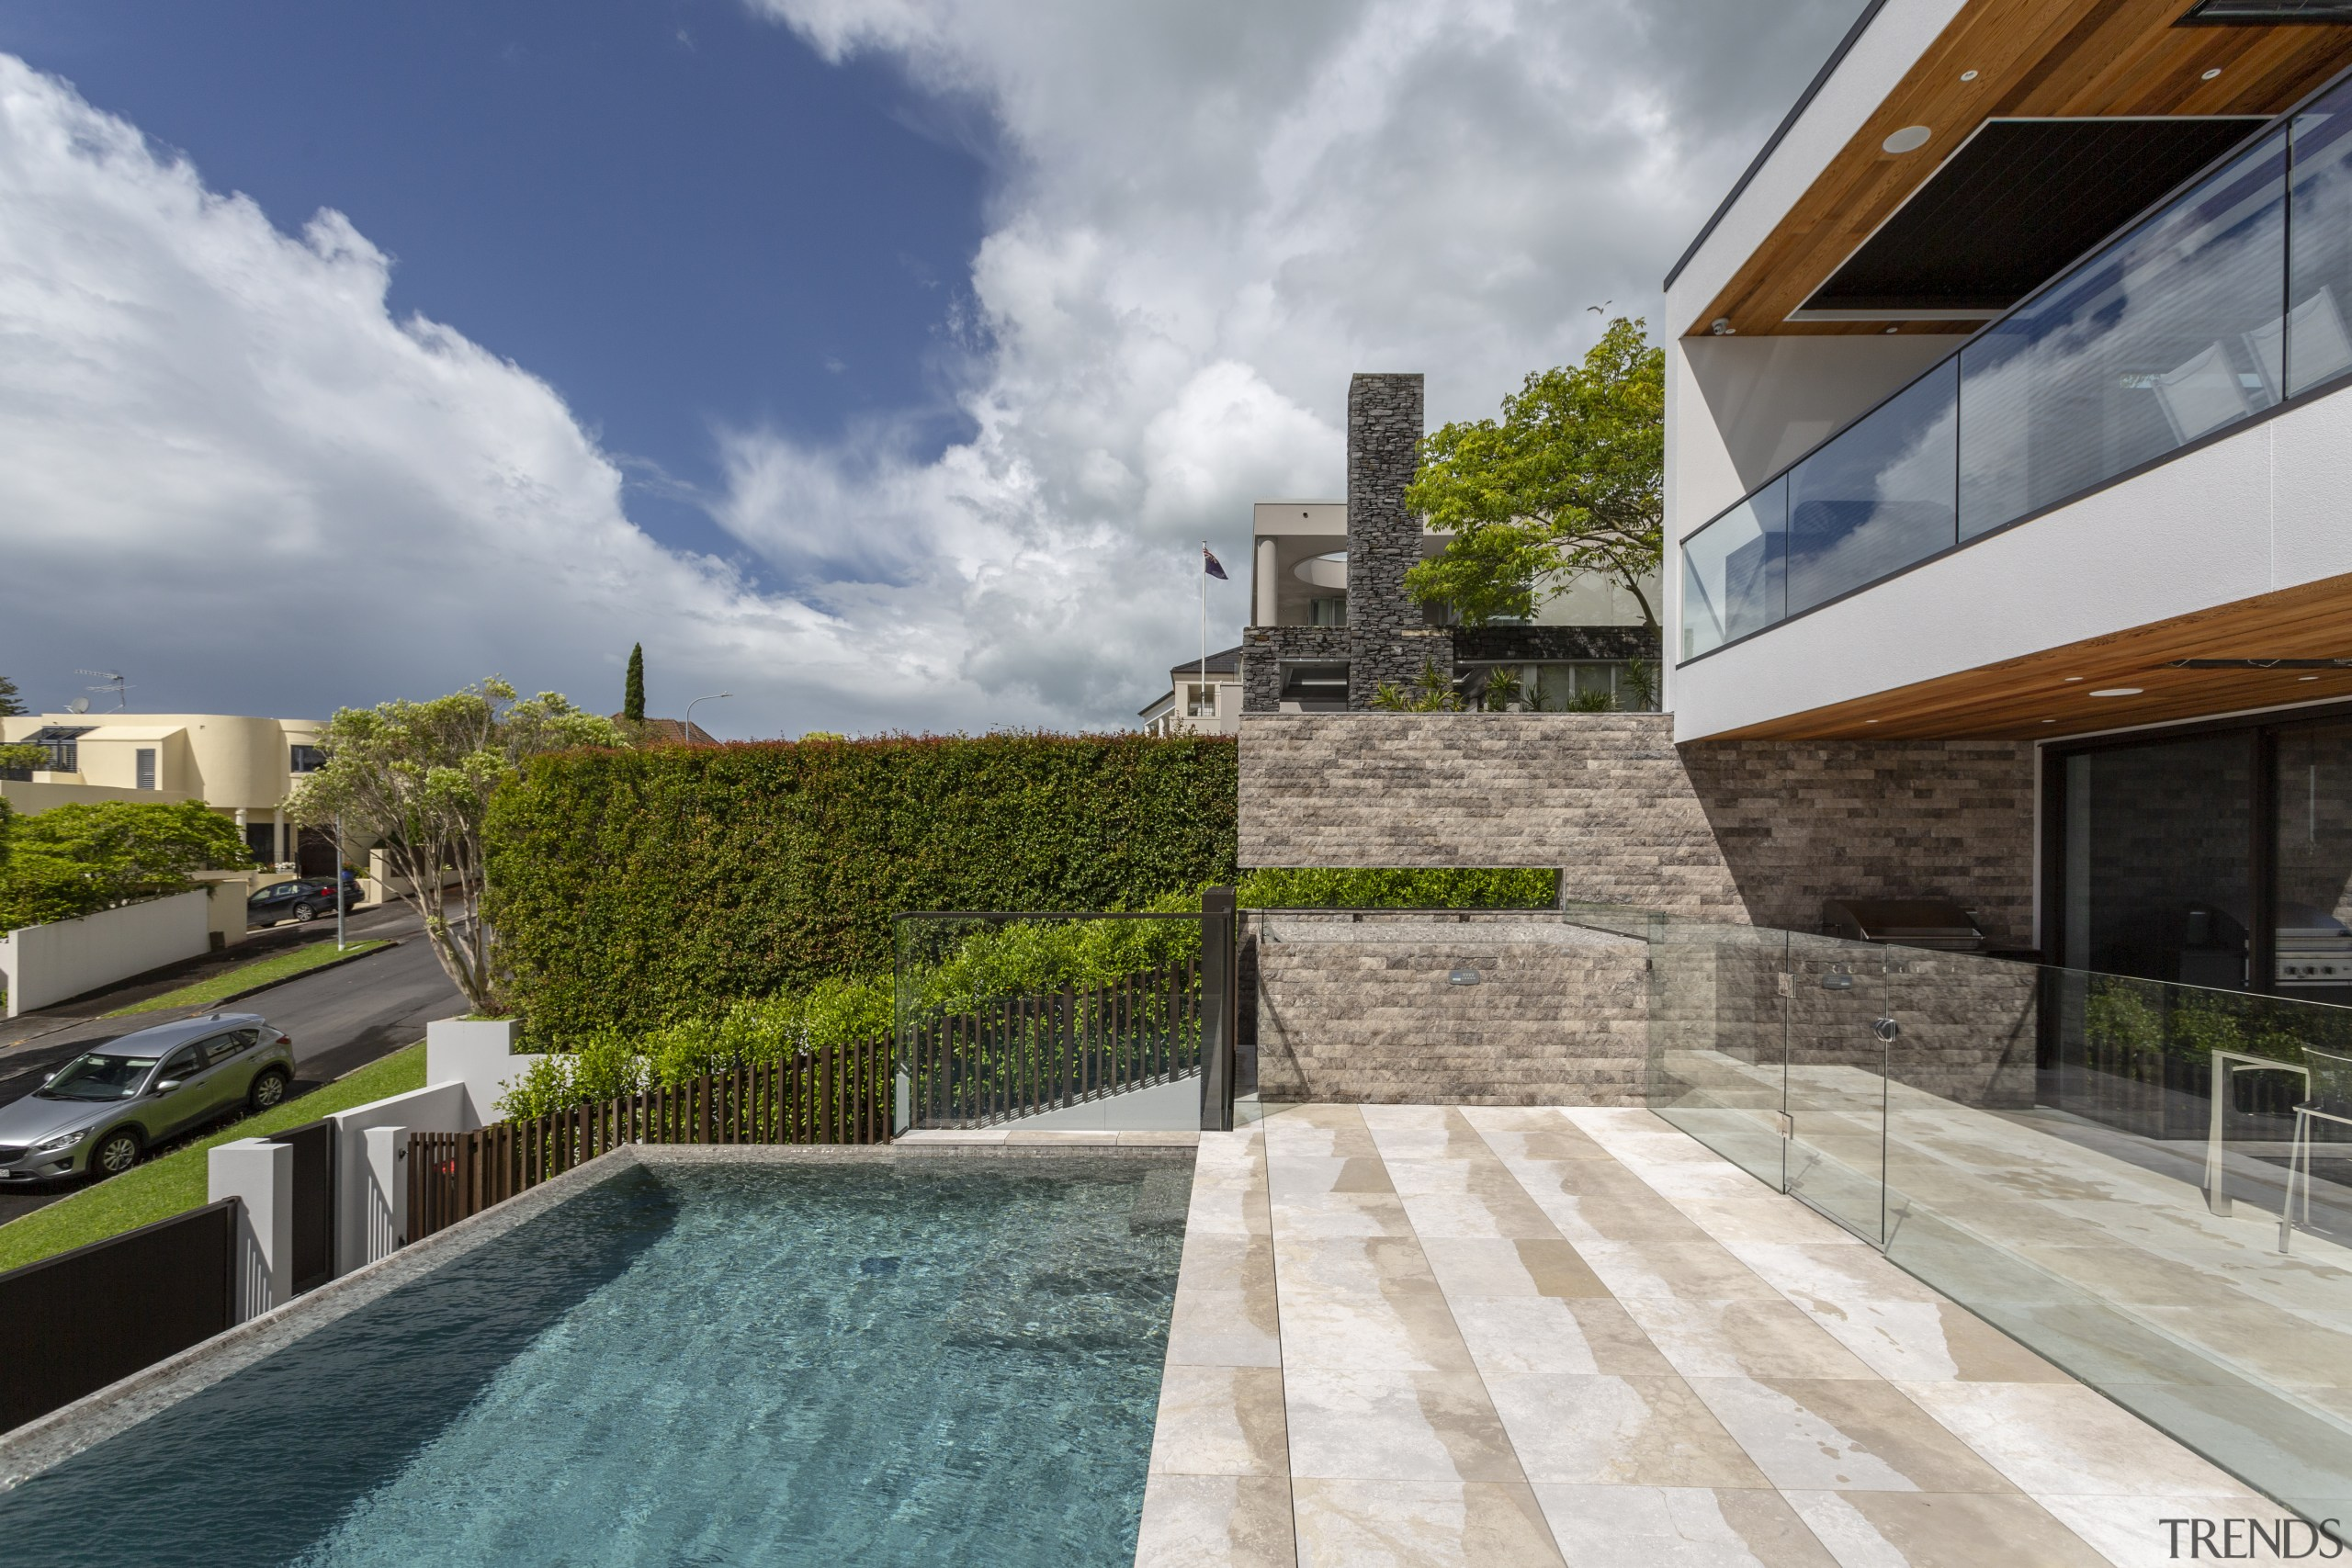 On this home by Jessop Architects, the spa gray